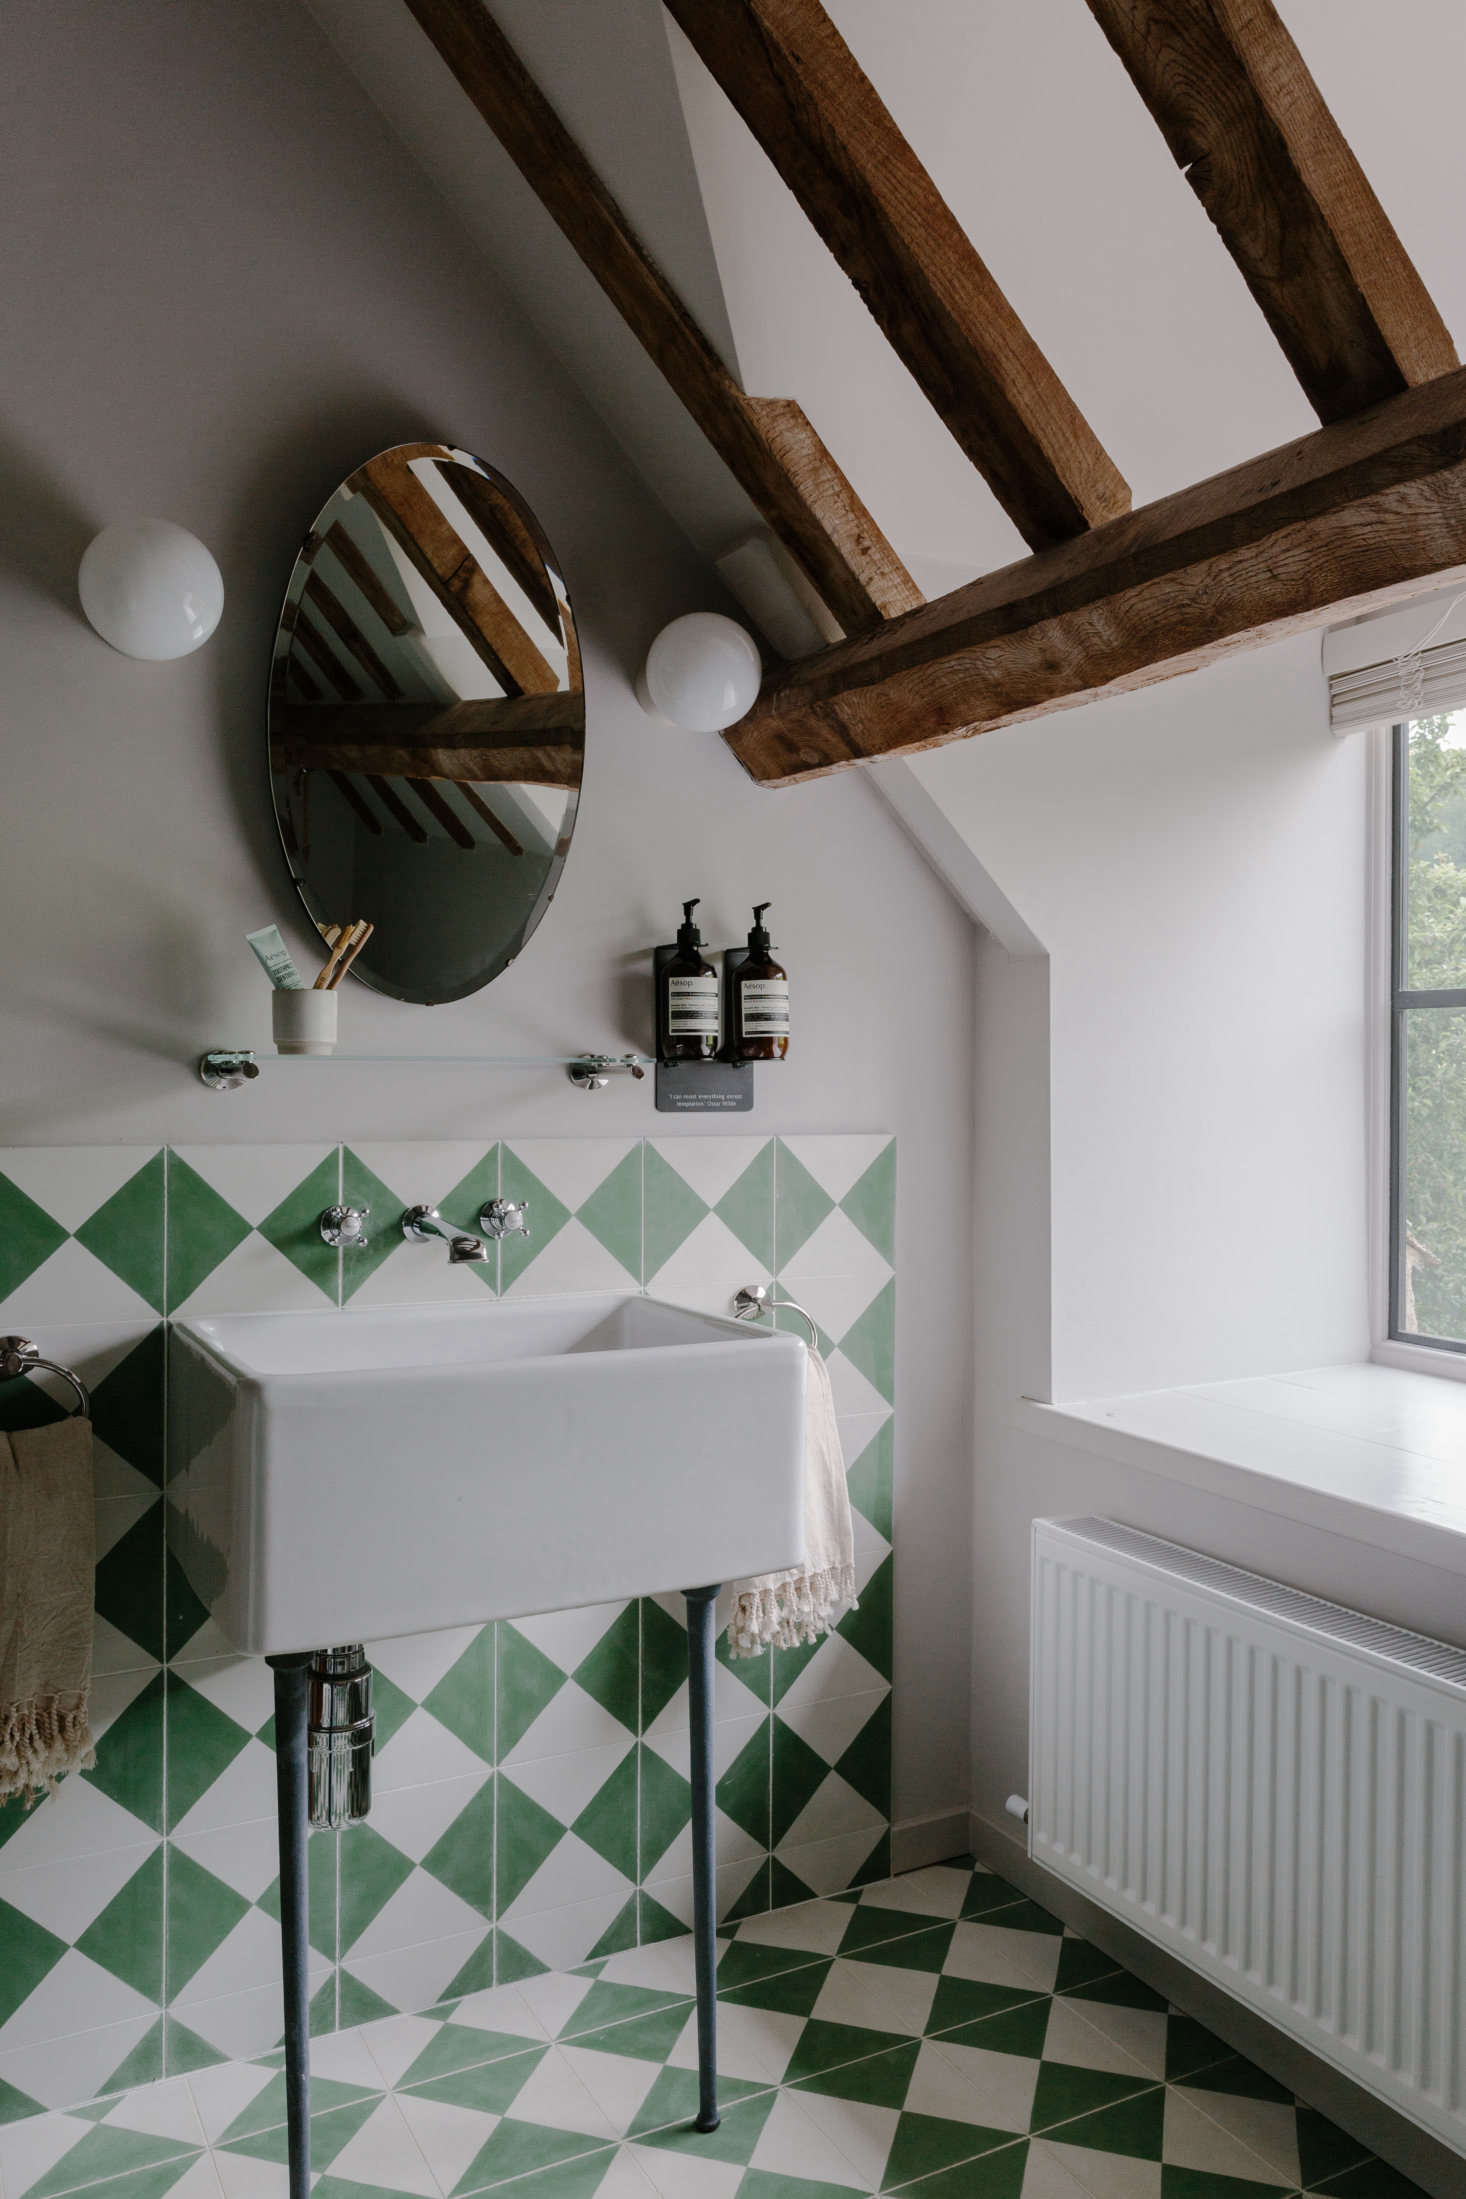 The bathrooms are tiled in green and white patterns, all sourced from Bert and May.